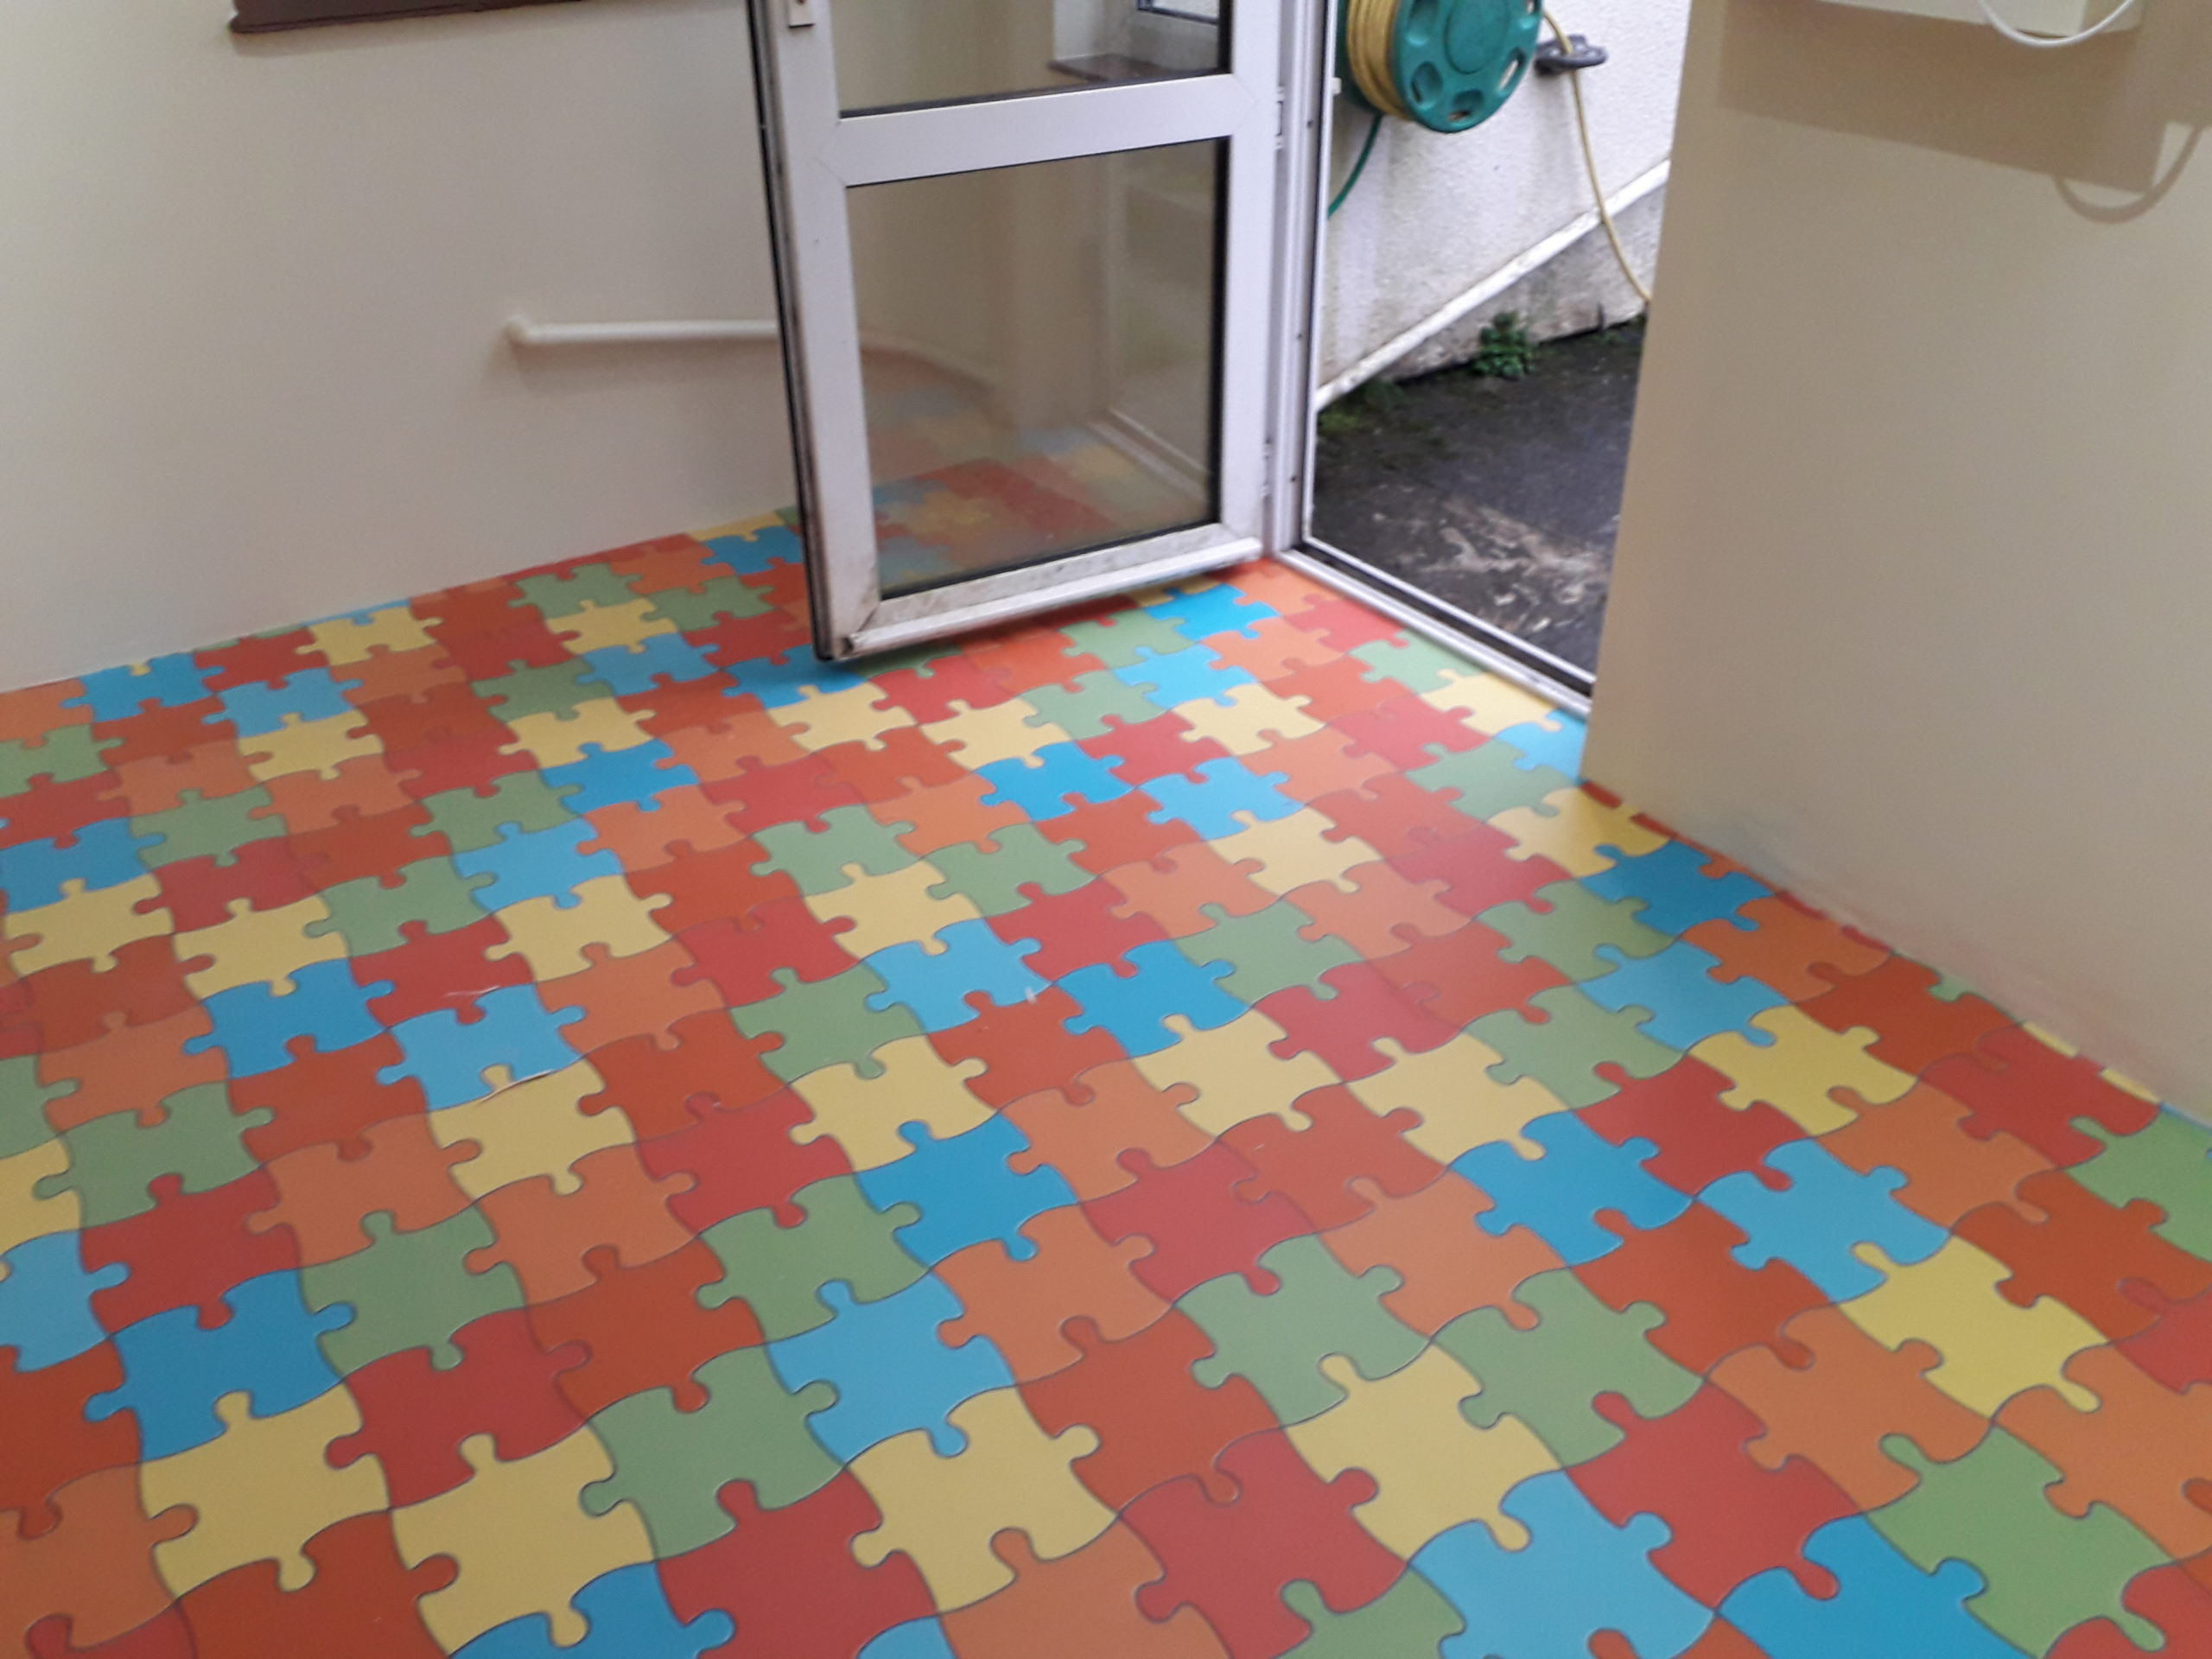 This jigsaw vinyl fitted in Pensilva is a playful pattern. Brightened up our rainy day!